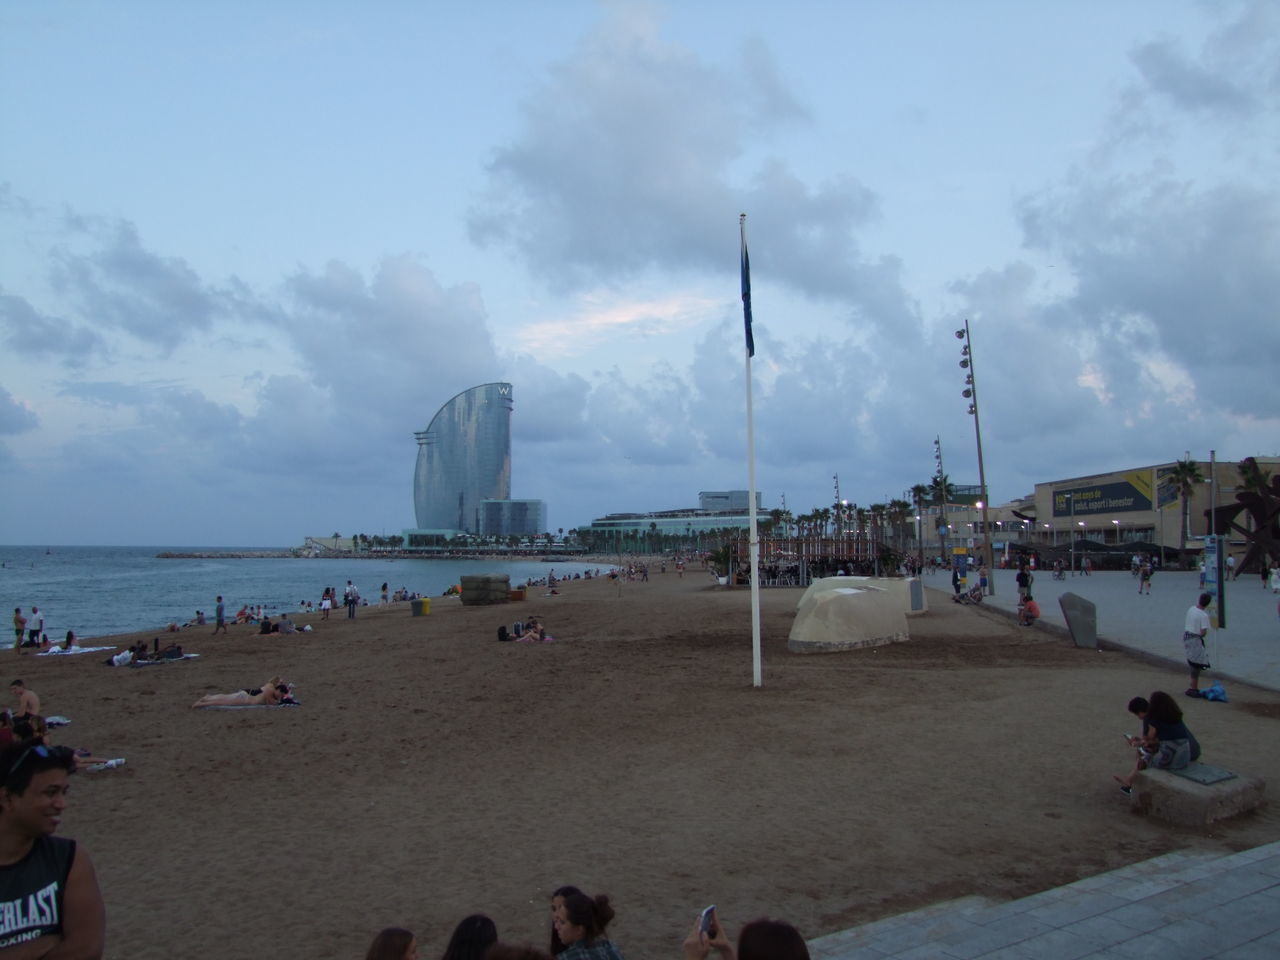 San Sebastia Beach Barcelona Beach Blue Sky And Grey Clouds City Cloudy Sky Coastline Composition Fun Incidental People Outdoor Photography Recreation  San Sebastian Beach Sand Sea Seaside Spaın Tourism Tourist Attraction  Tourist Destination Travel Destinations Vacations Water